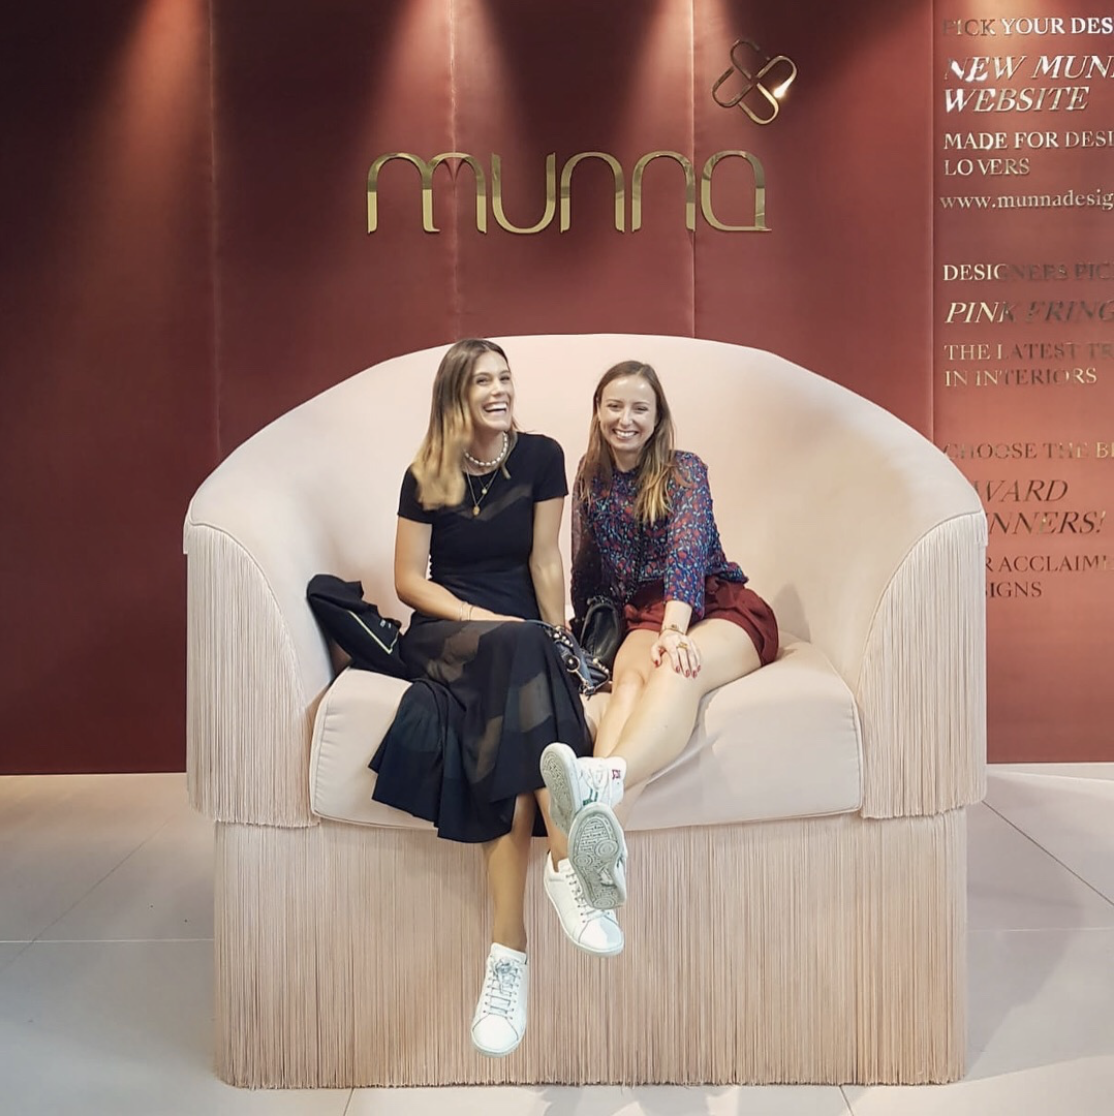 IV.Travelled to Paris for Maison et Objet 2018 - Click here for our highlights!